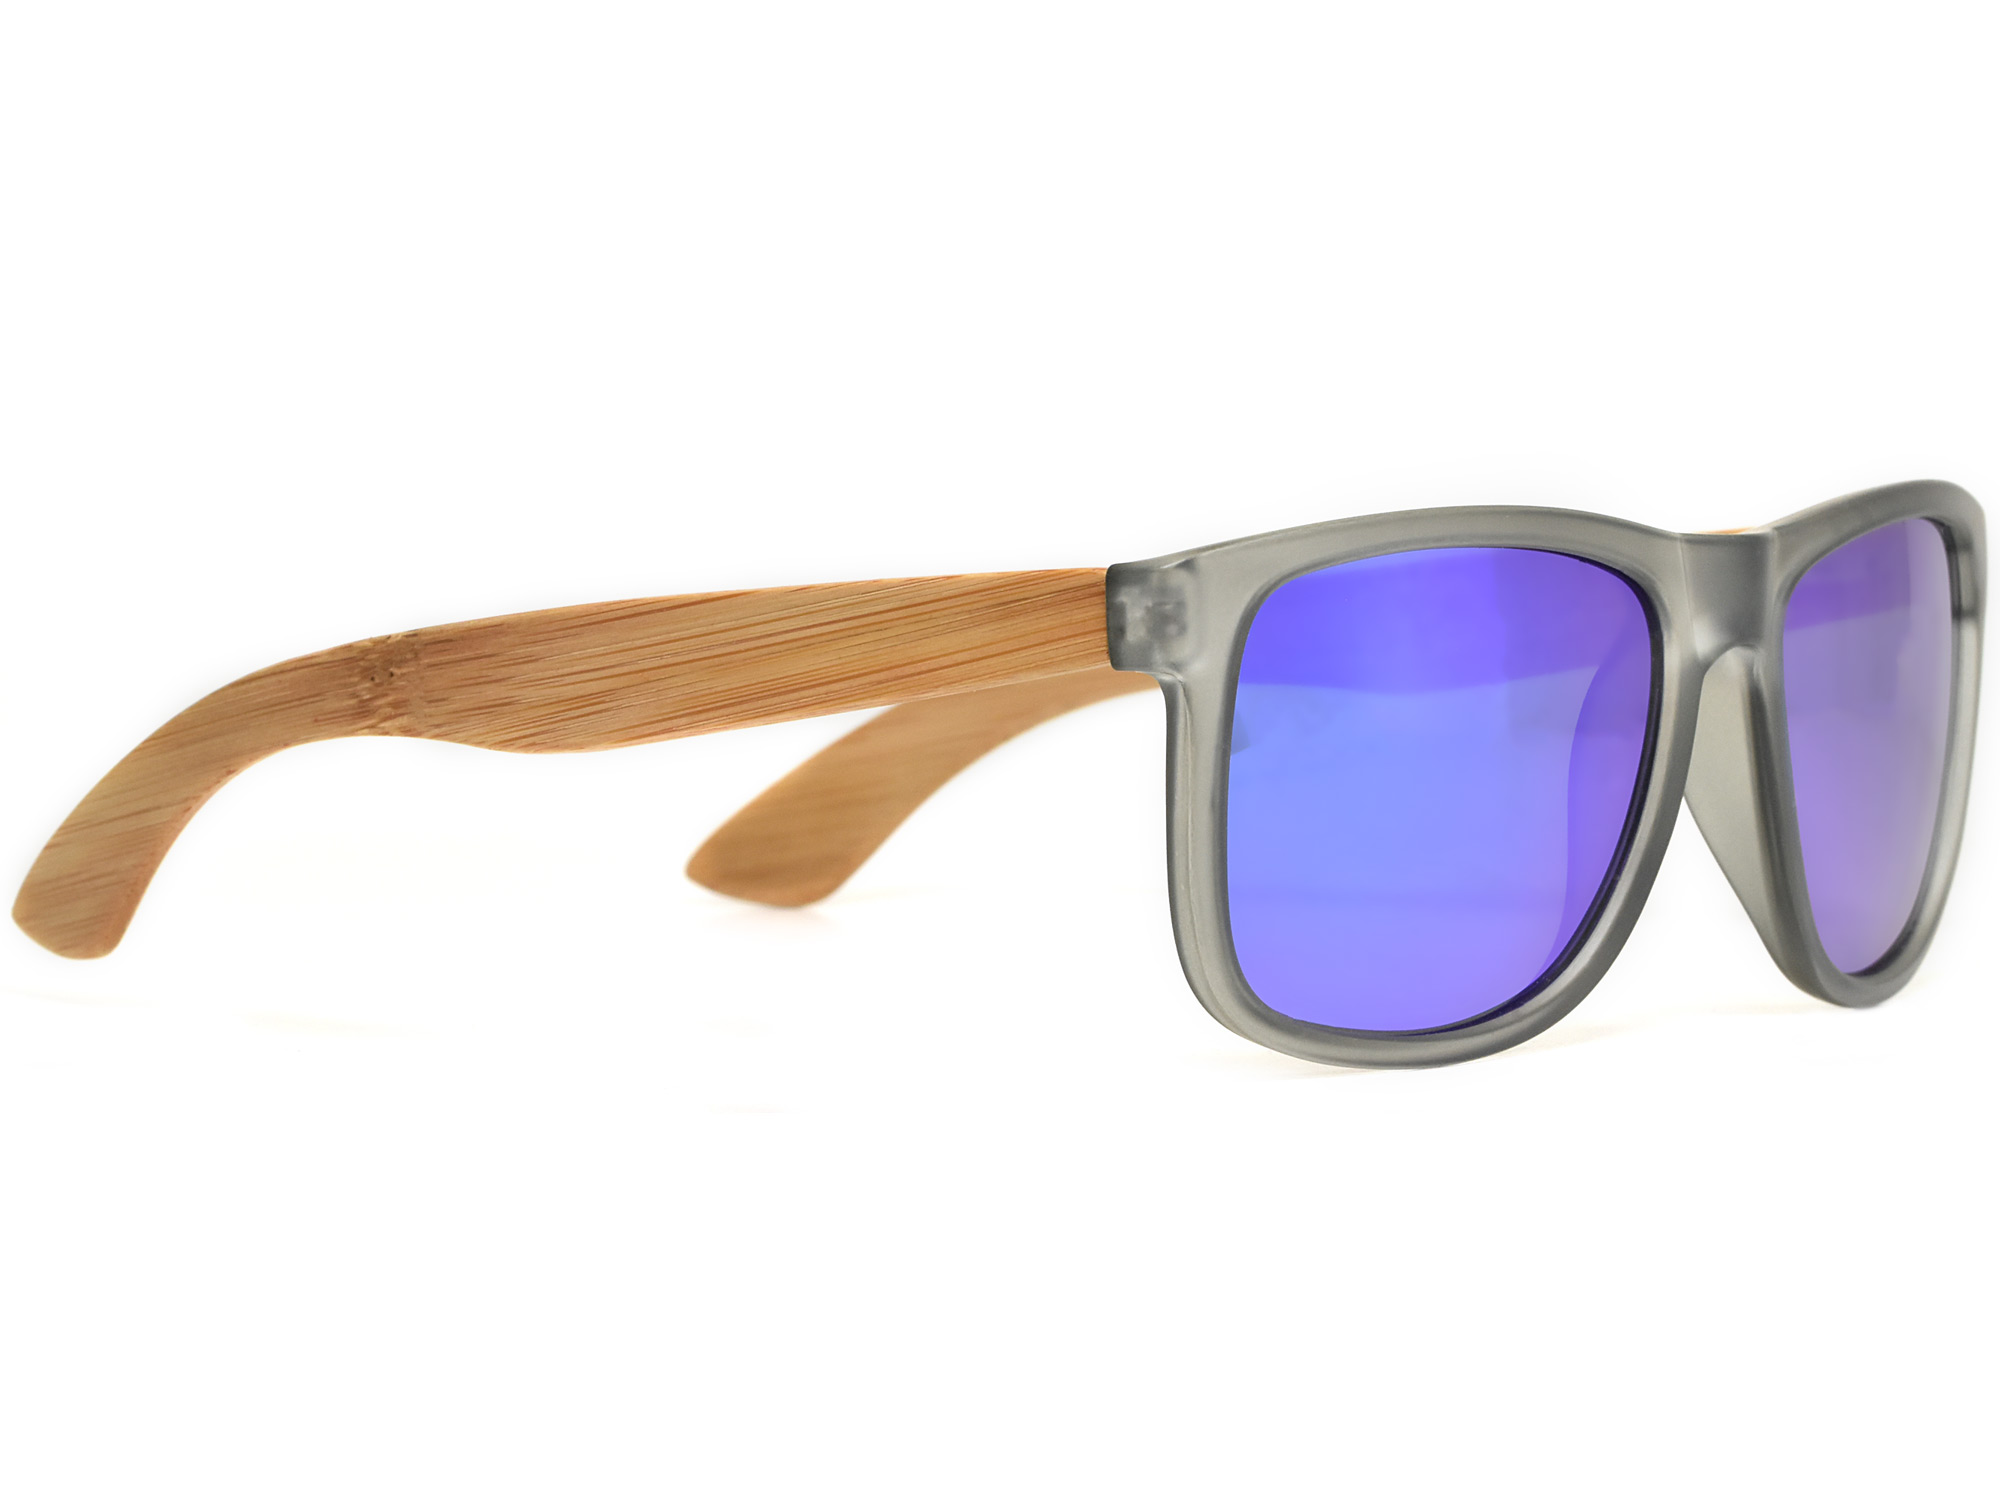 Square bamboo wood sunglasses with blue mirrored polarized lenses right